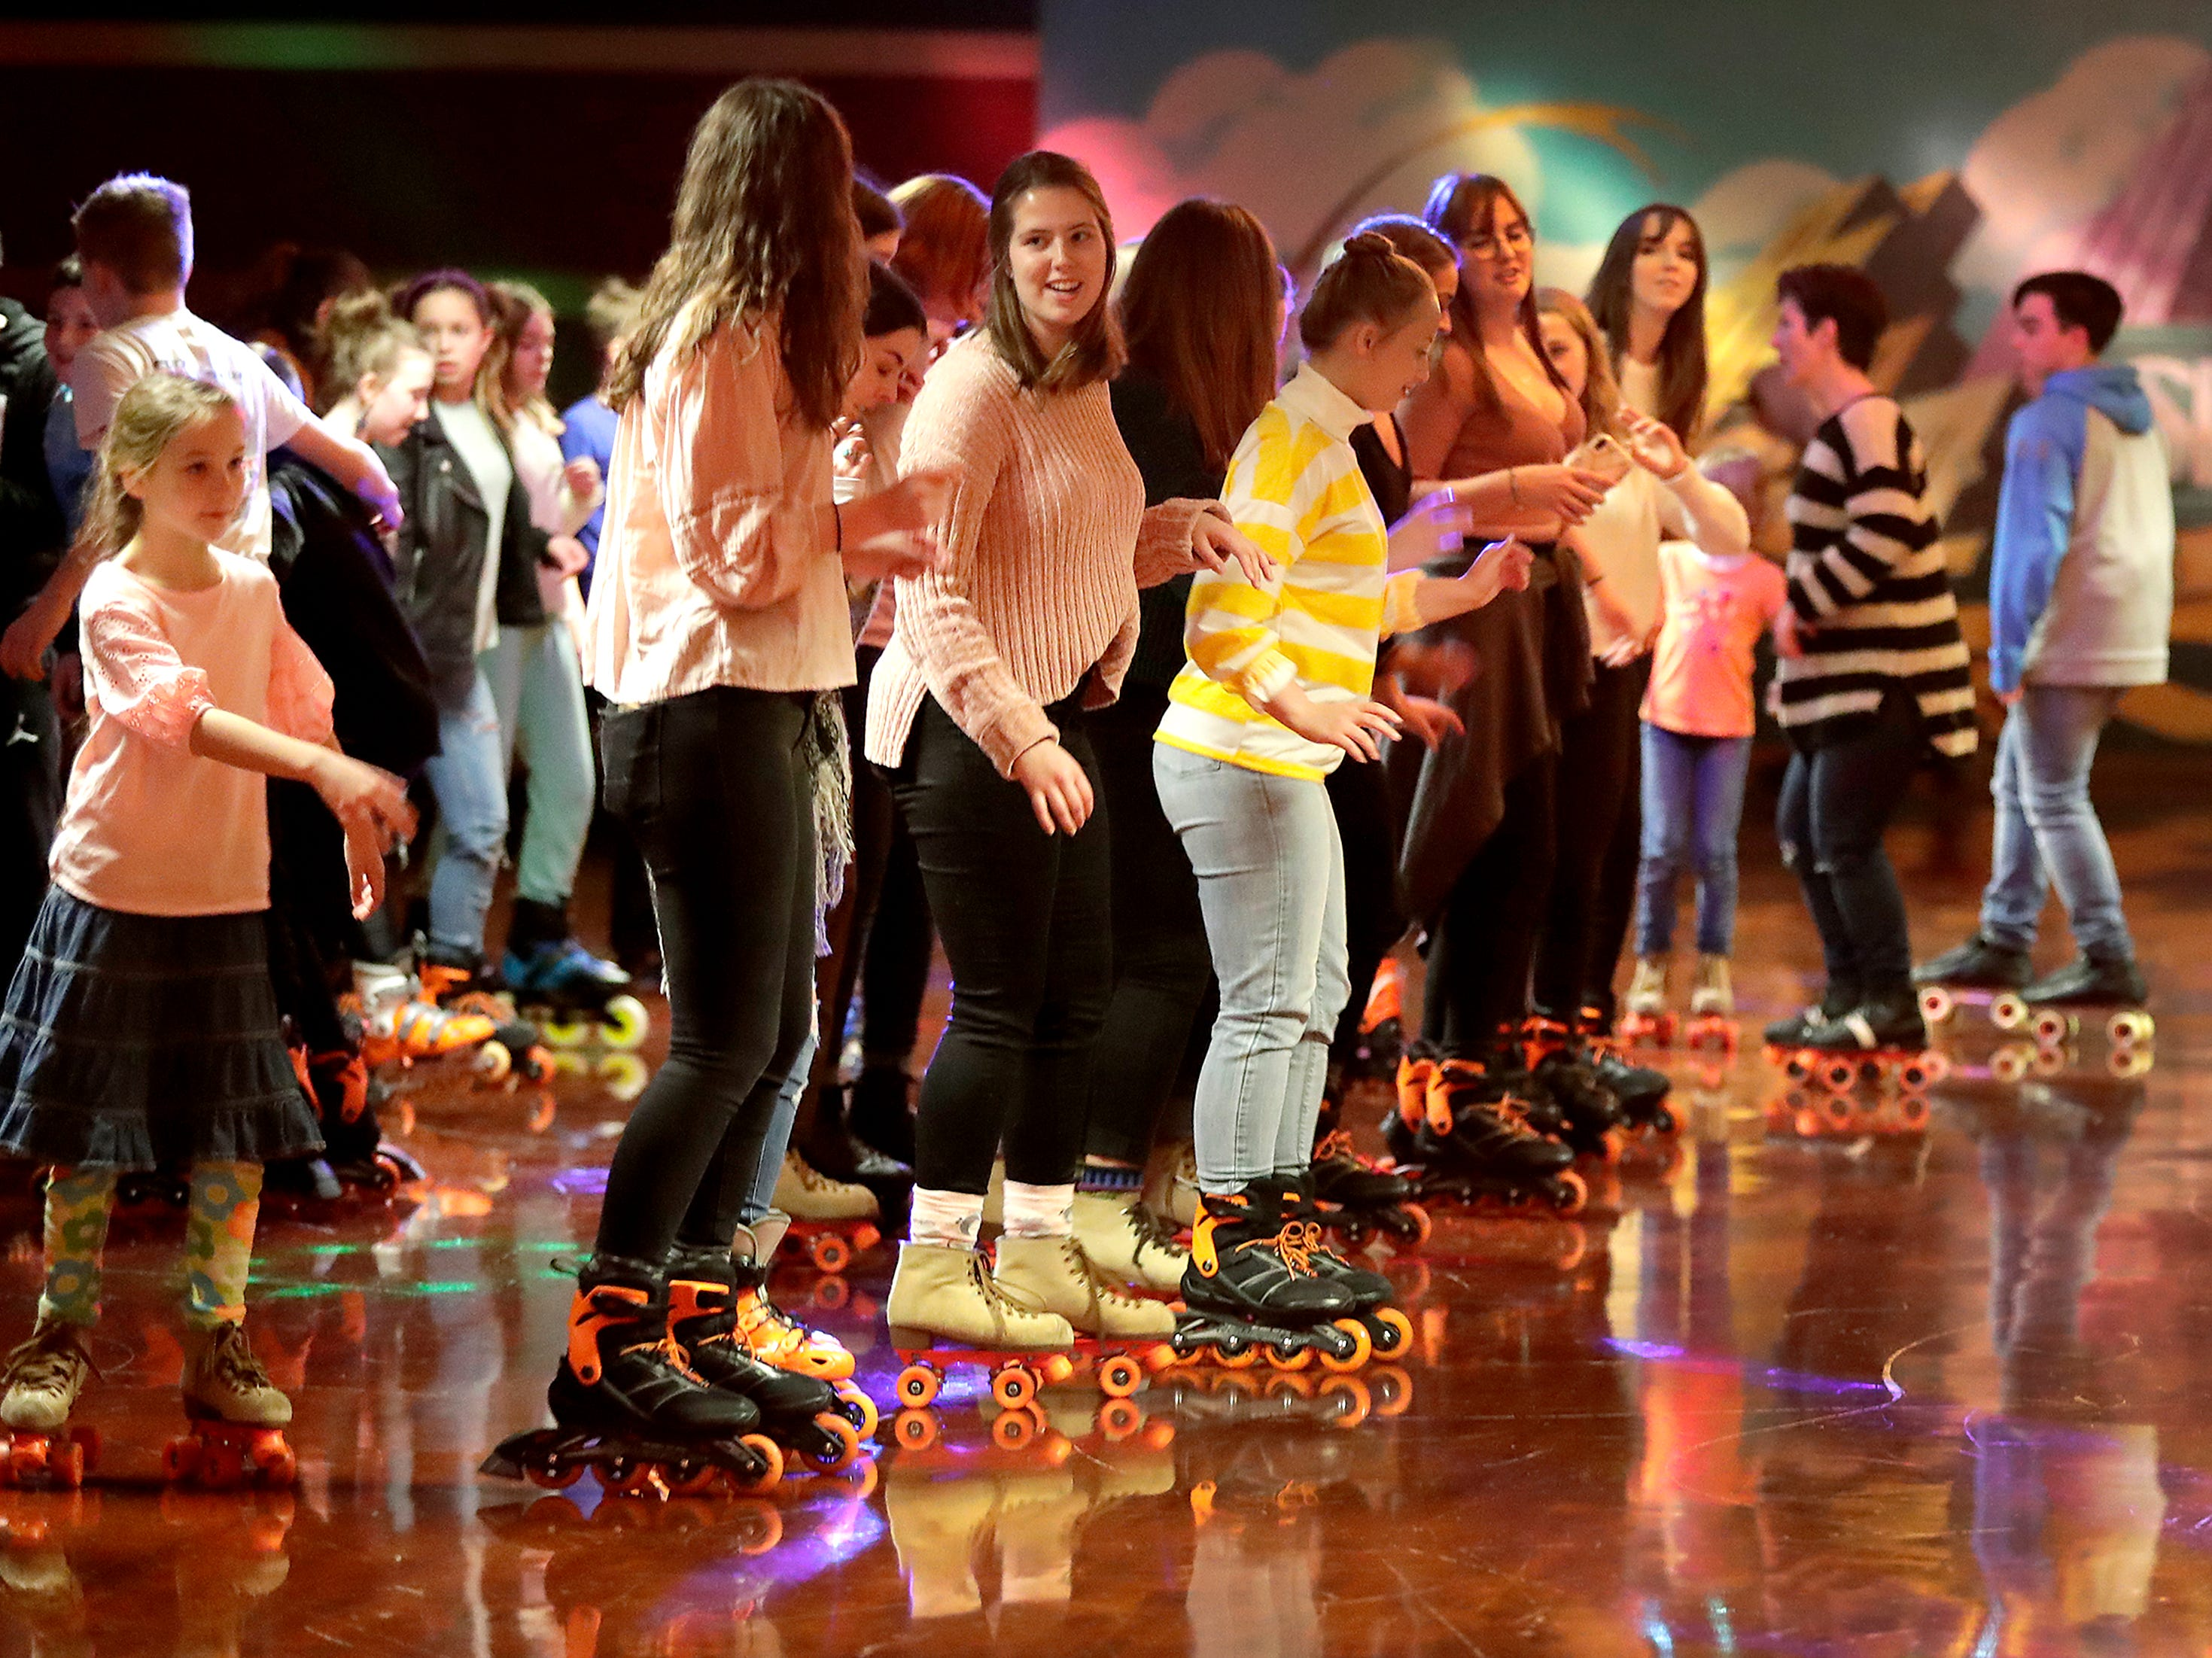 Skaters skate to the Cupid Shuffle at Skate City roller skating rink on Friday, February 2, 2019, in Kimberly, Wis.